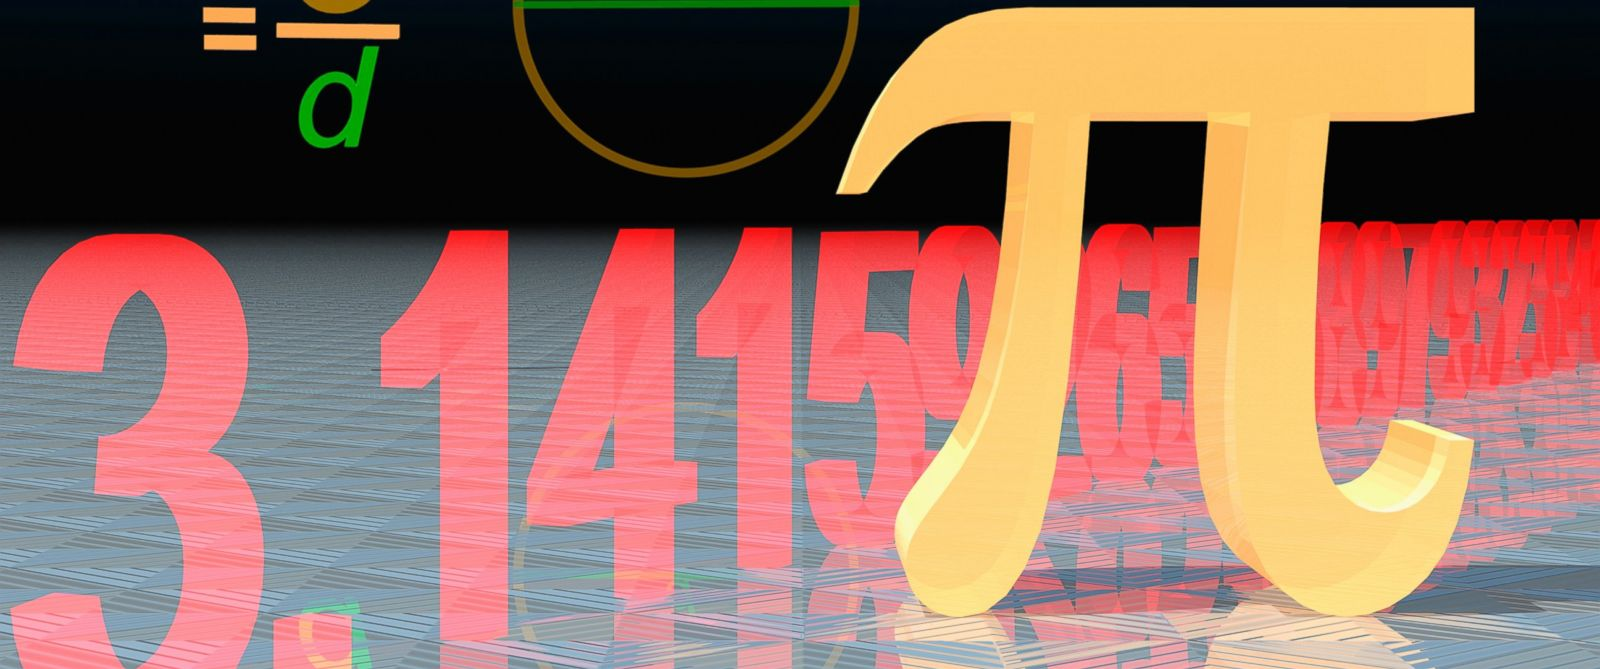 Why 'Pi Day' 2016 Is Extra Special - ABC News